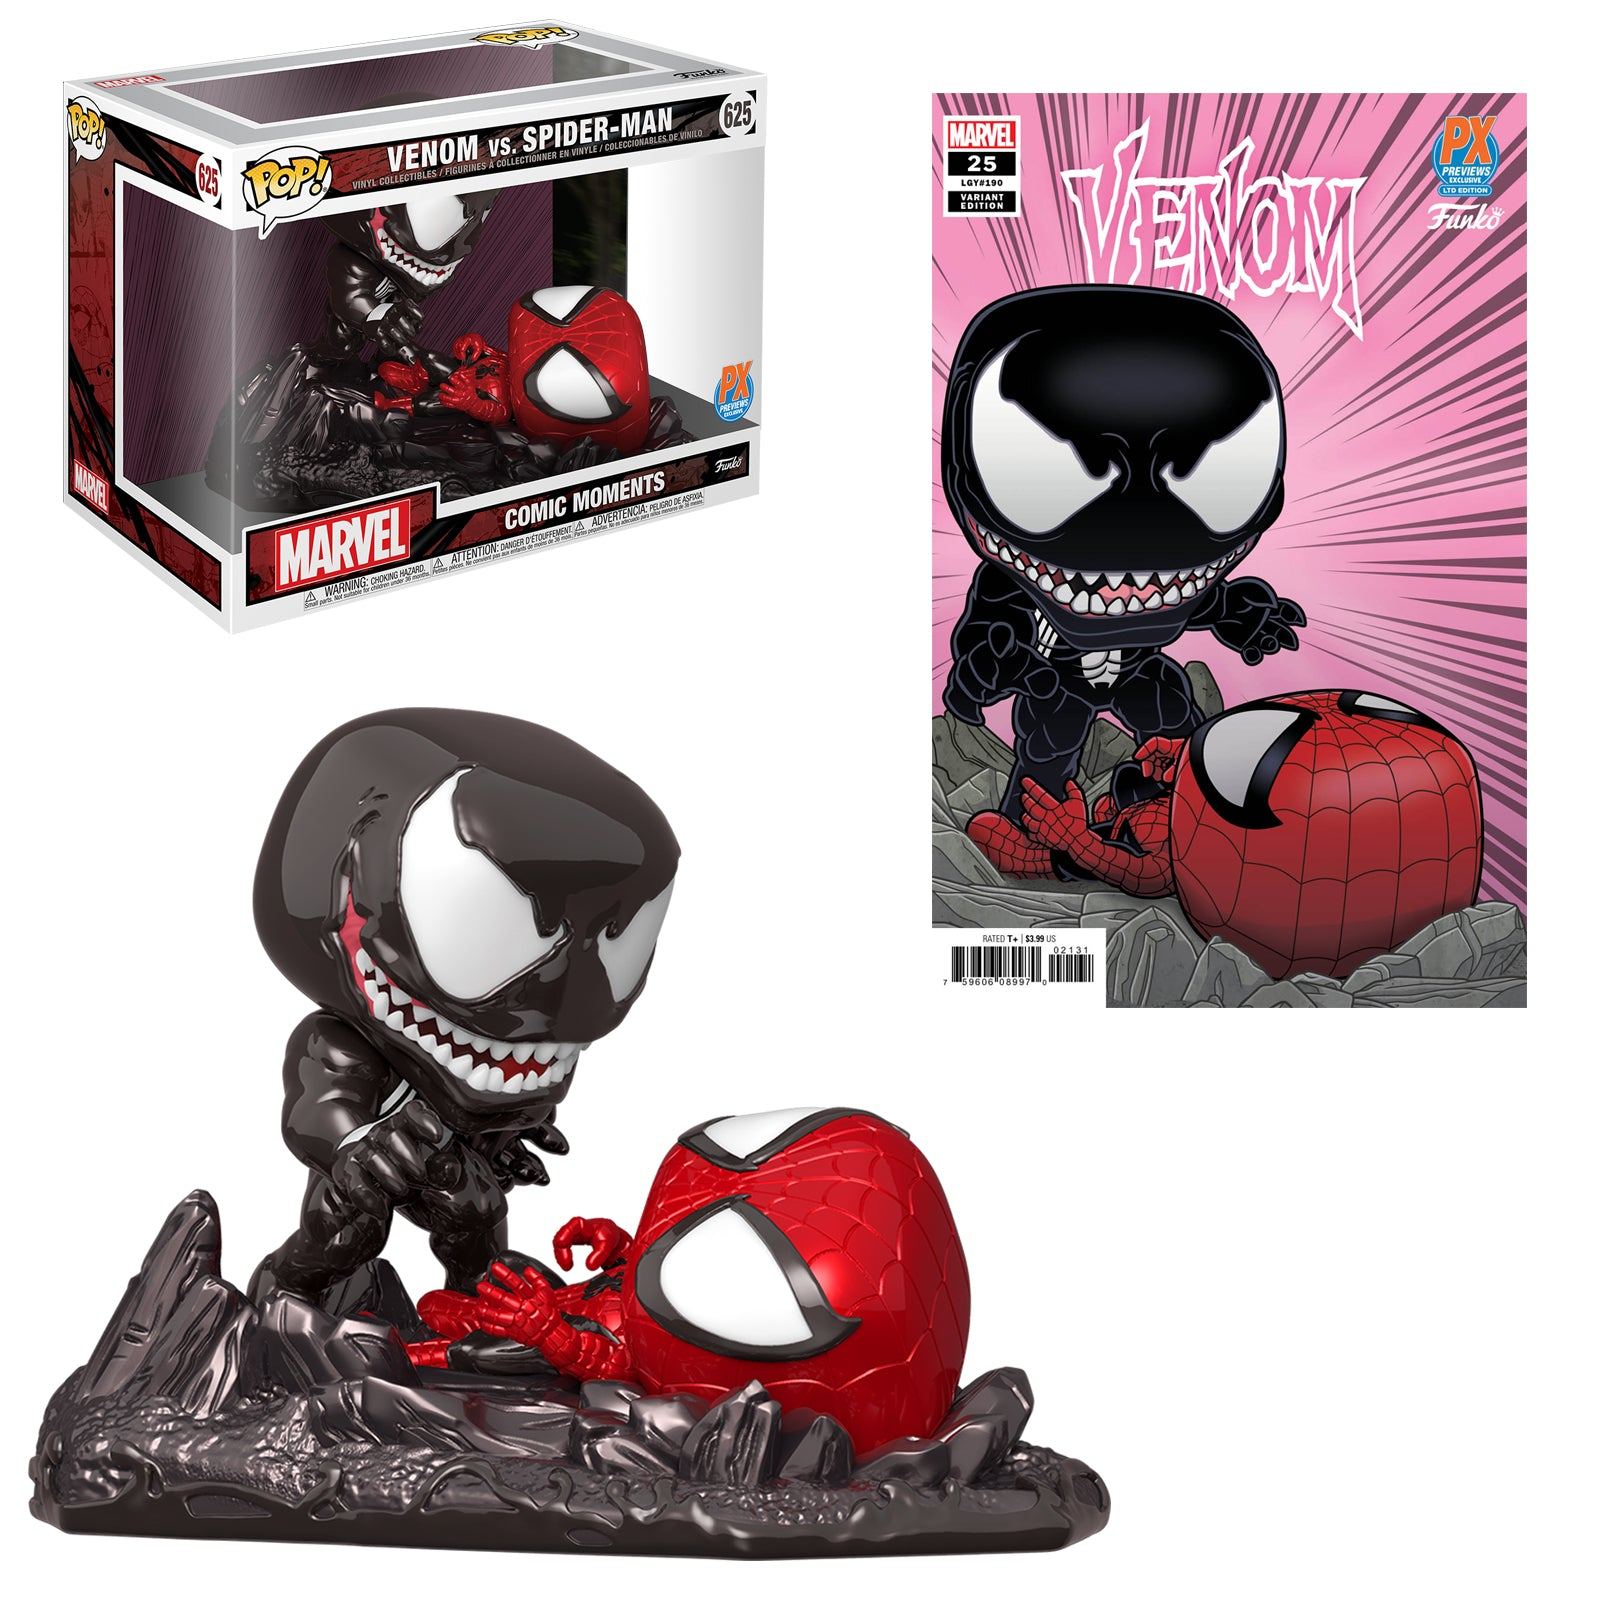 Marvel Spider-Man vs. Venom 2-Pack Previews Exclusive with Comic